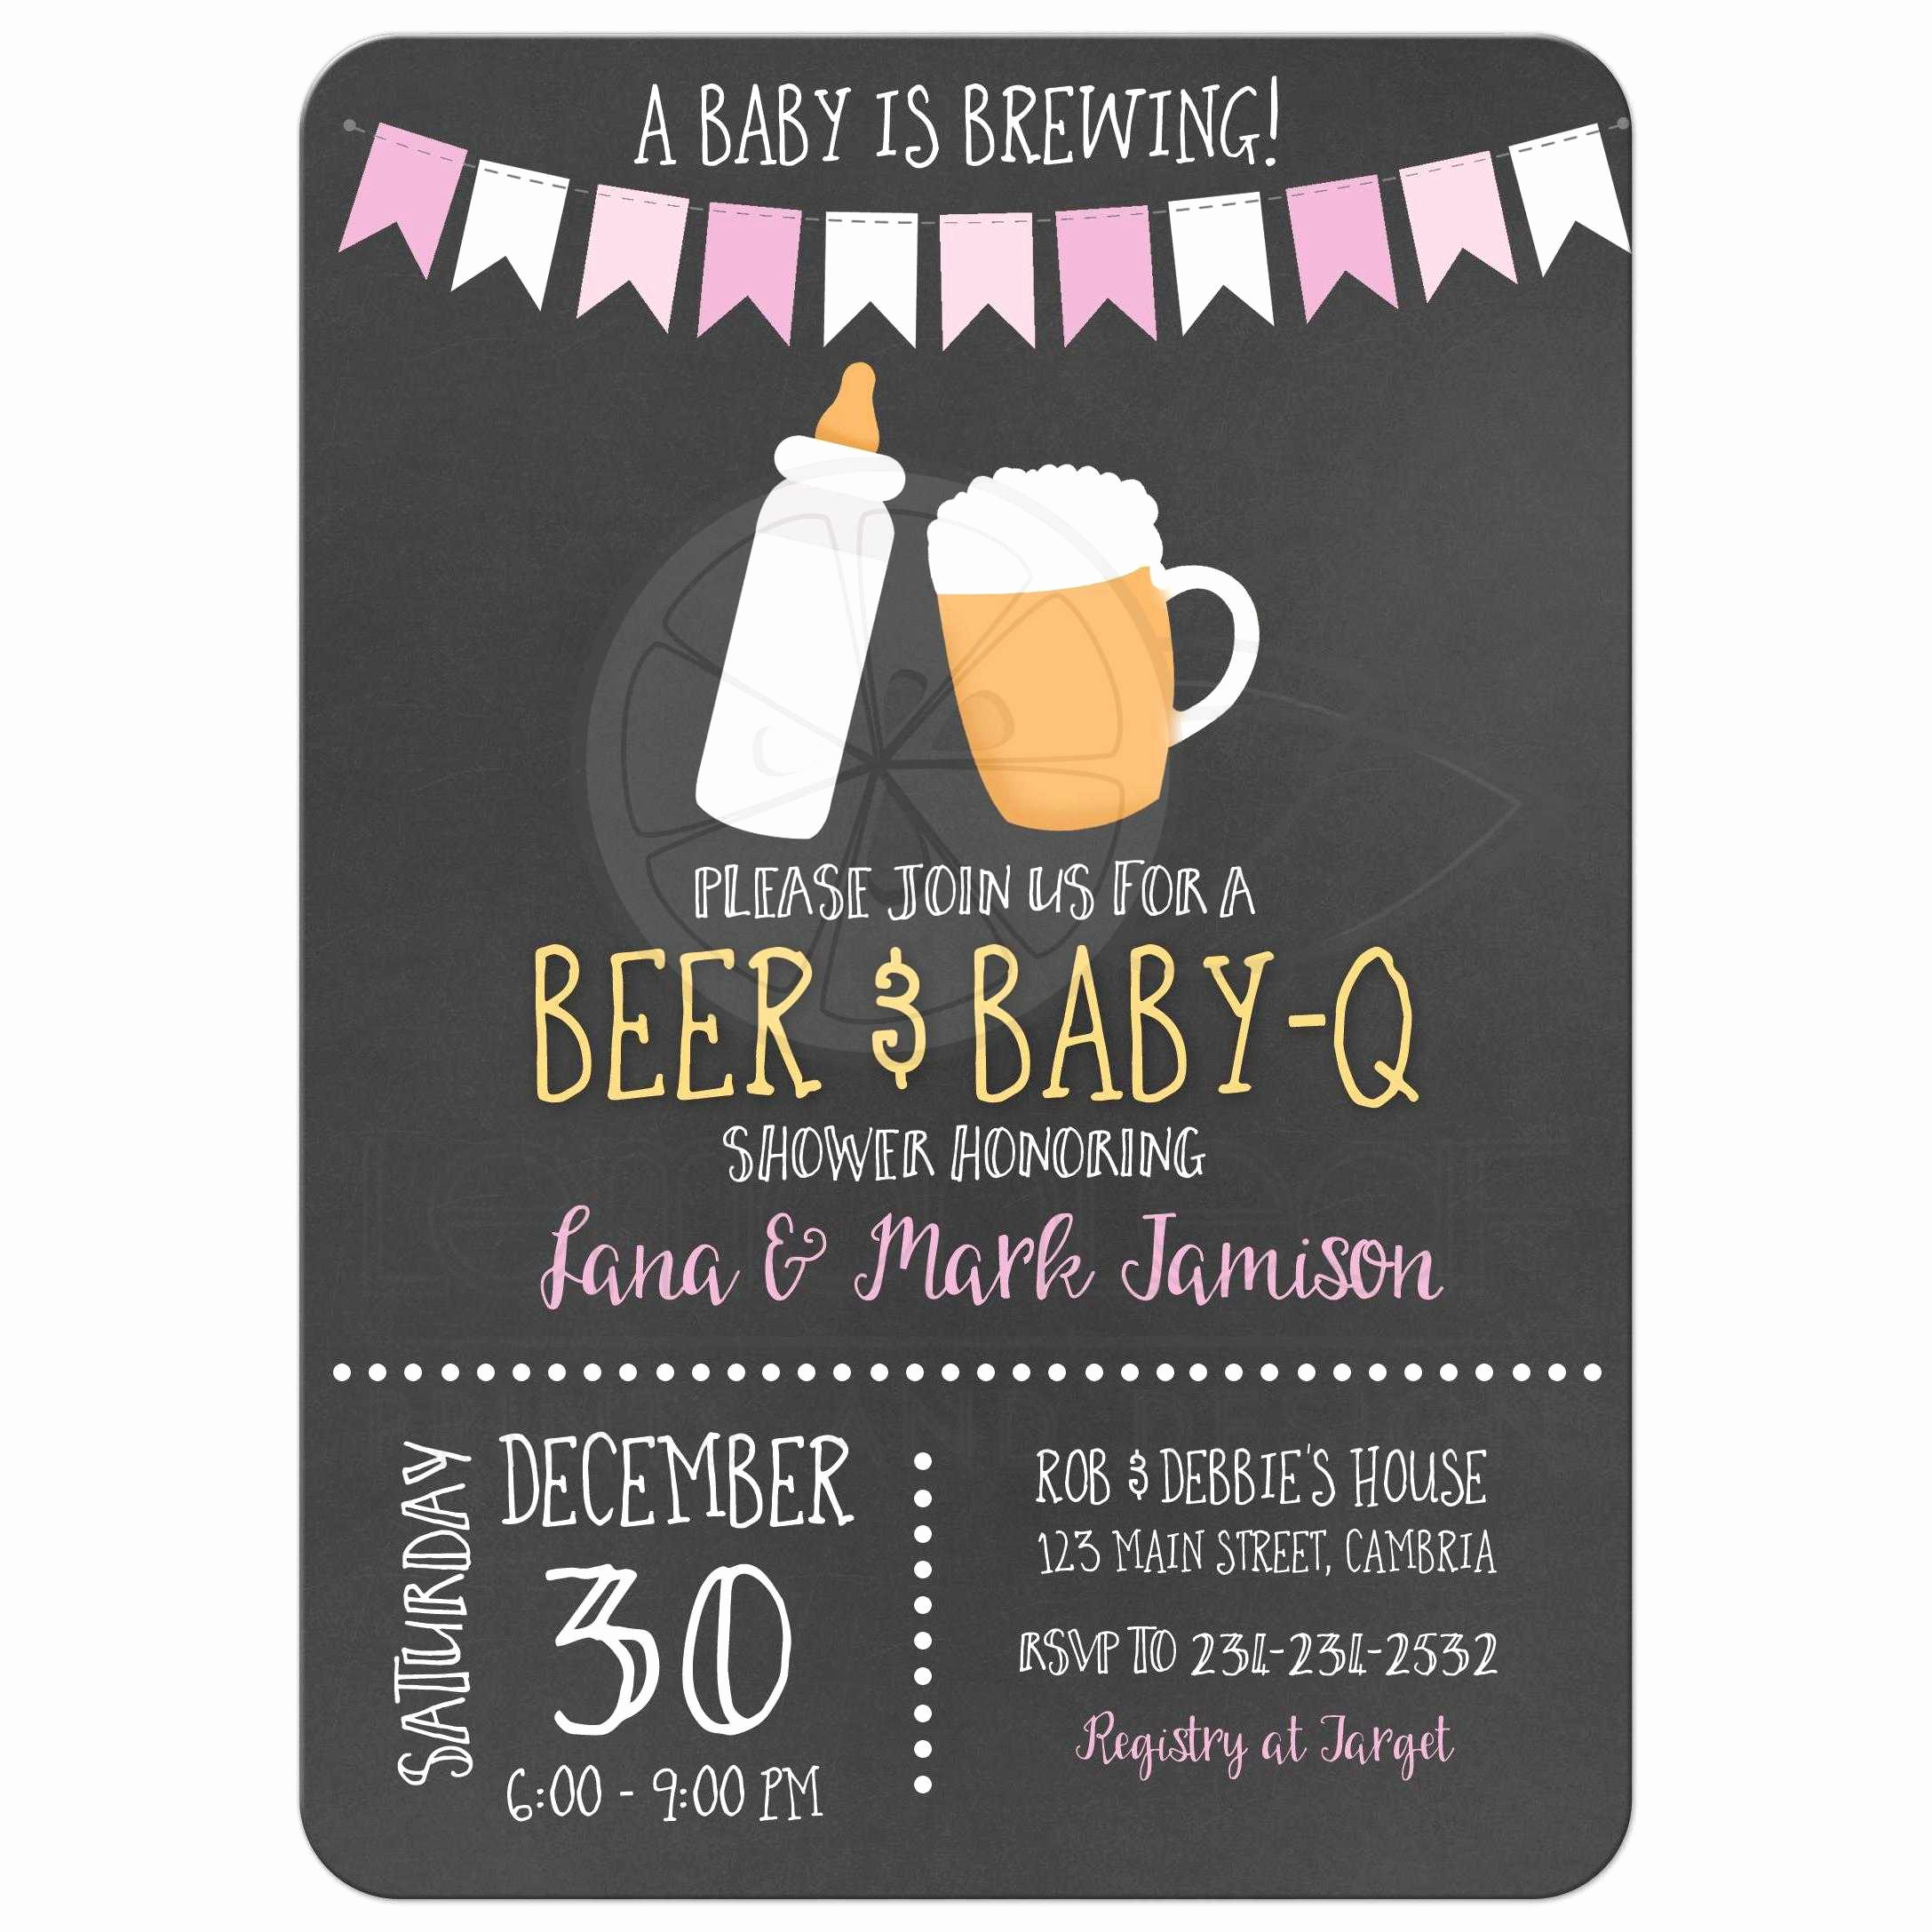 A Baby is Brewing Invitation Best Of Baby is Brewing Bbq Baby Q Co Ed Chalkboard Baby Shower